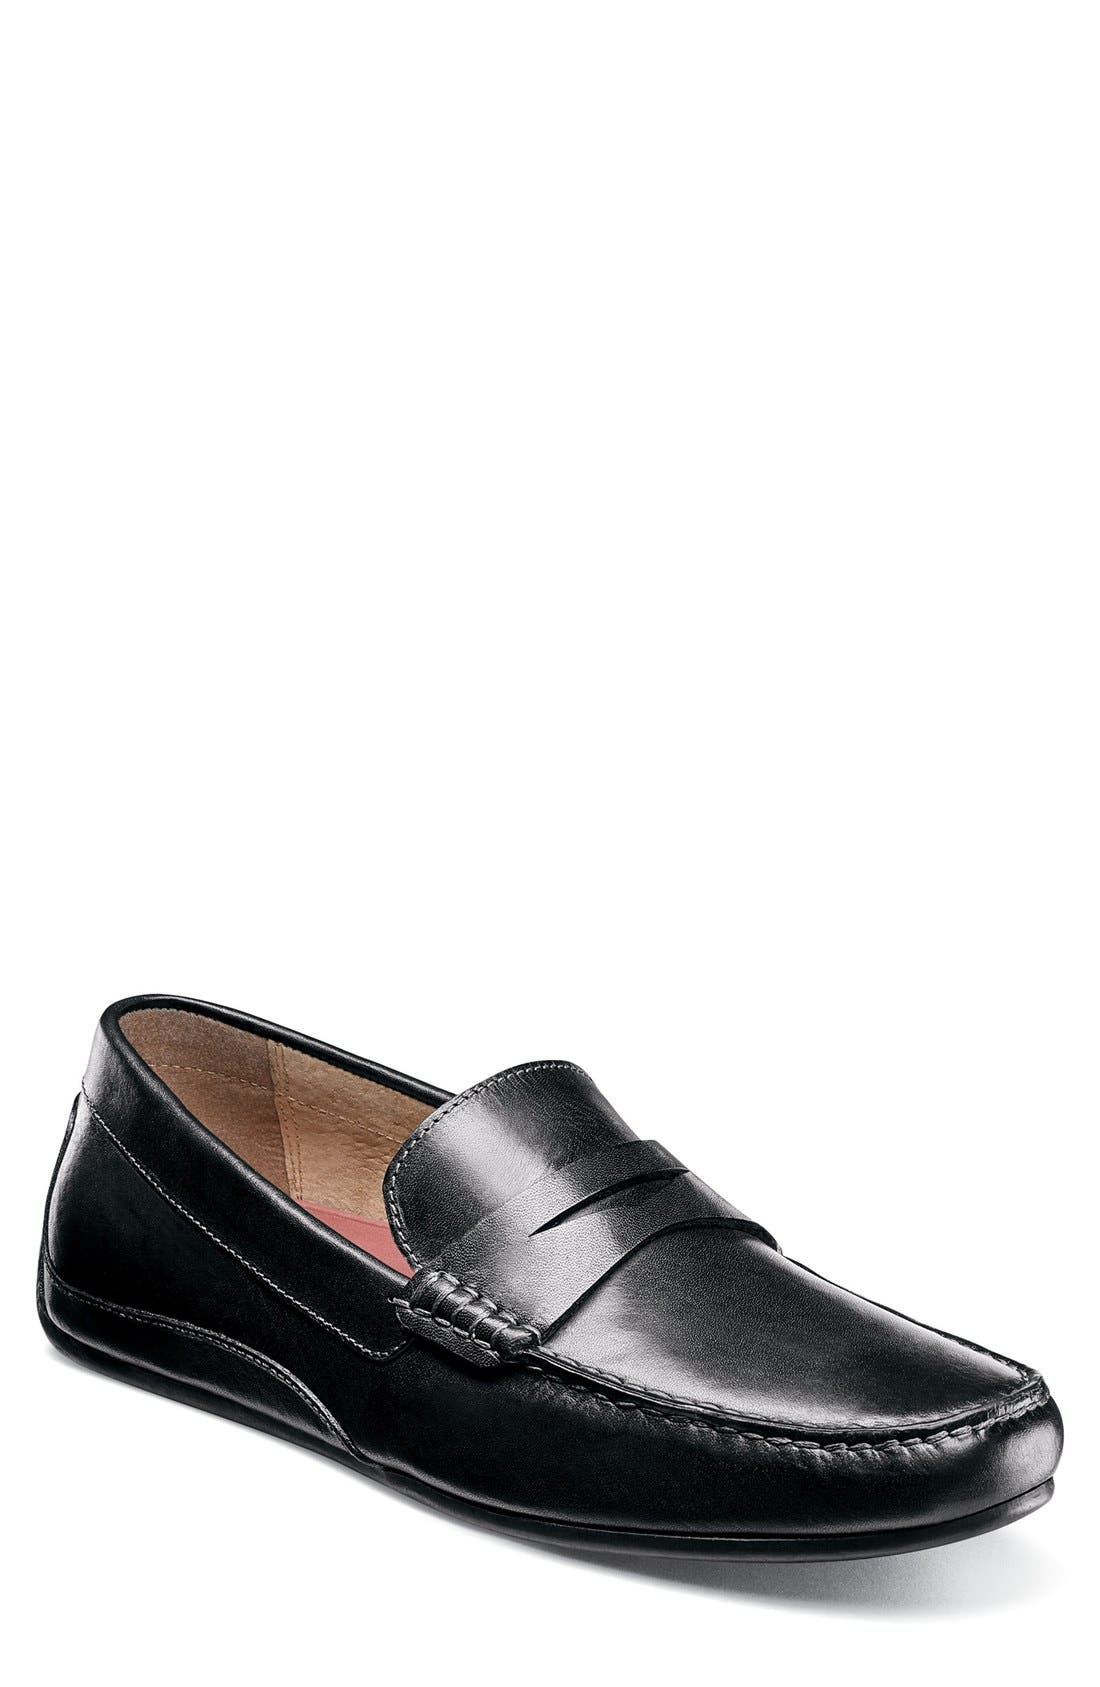 Oval Driving Shoe,                         Main,                         color, Black Leather